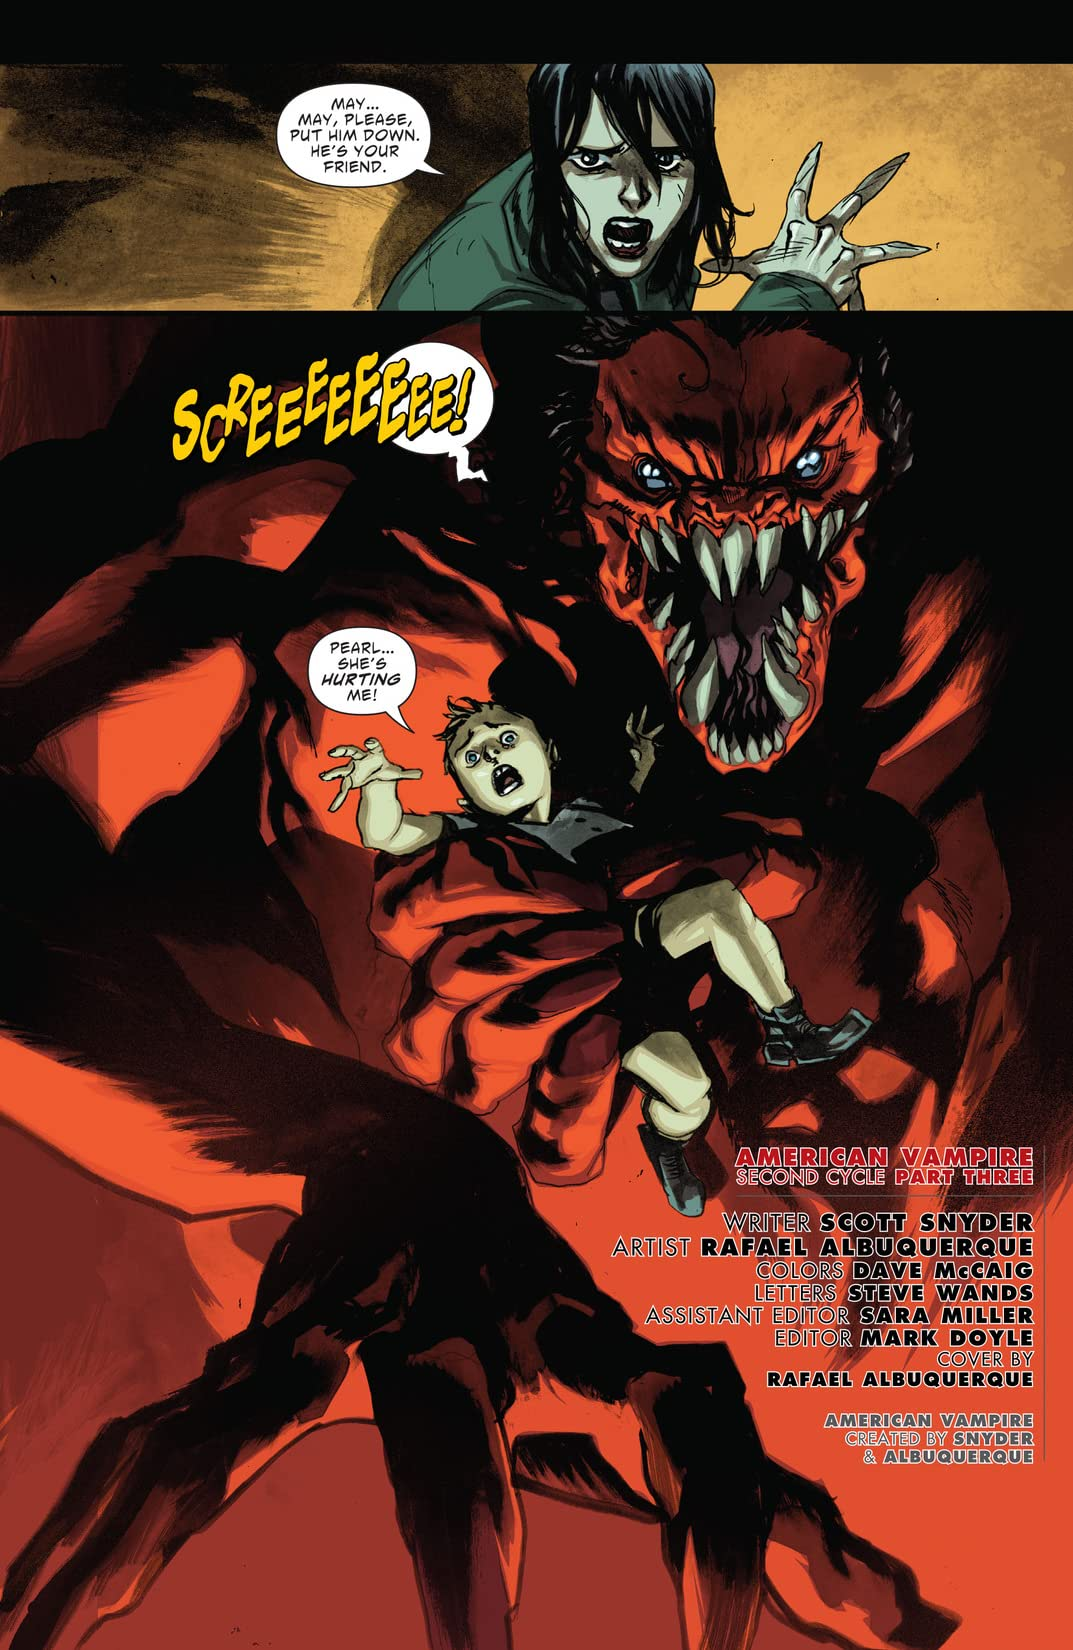 American Vampire: Second Cycle #3